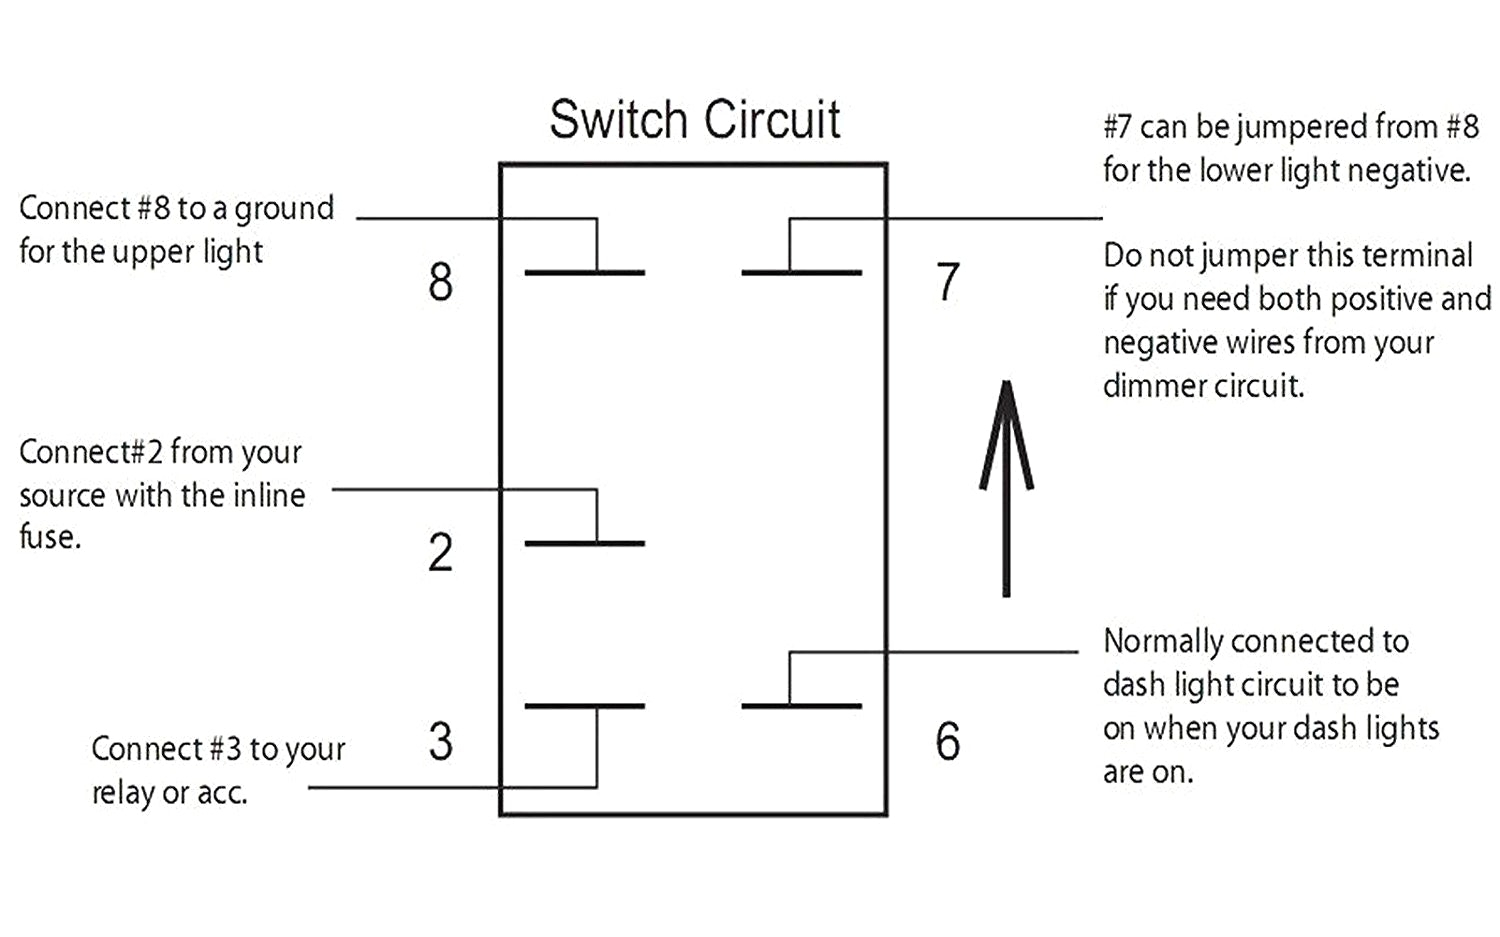 carling technologies rocker switch wiring diagram Download-Carling Technologies Rocker Switch Wiring Diagram Elegant toggle Switch Wiring Diagram 12v Fitfathers 10-p